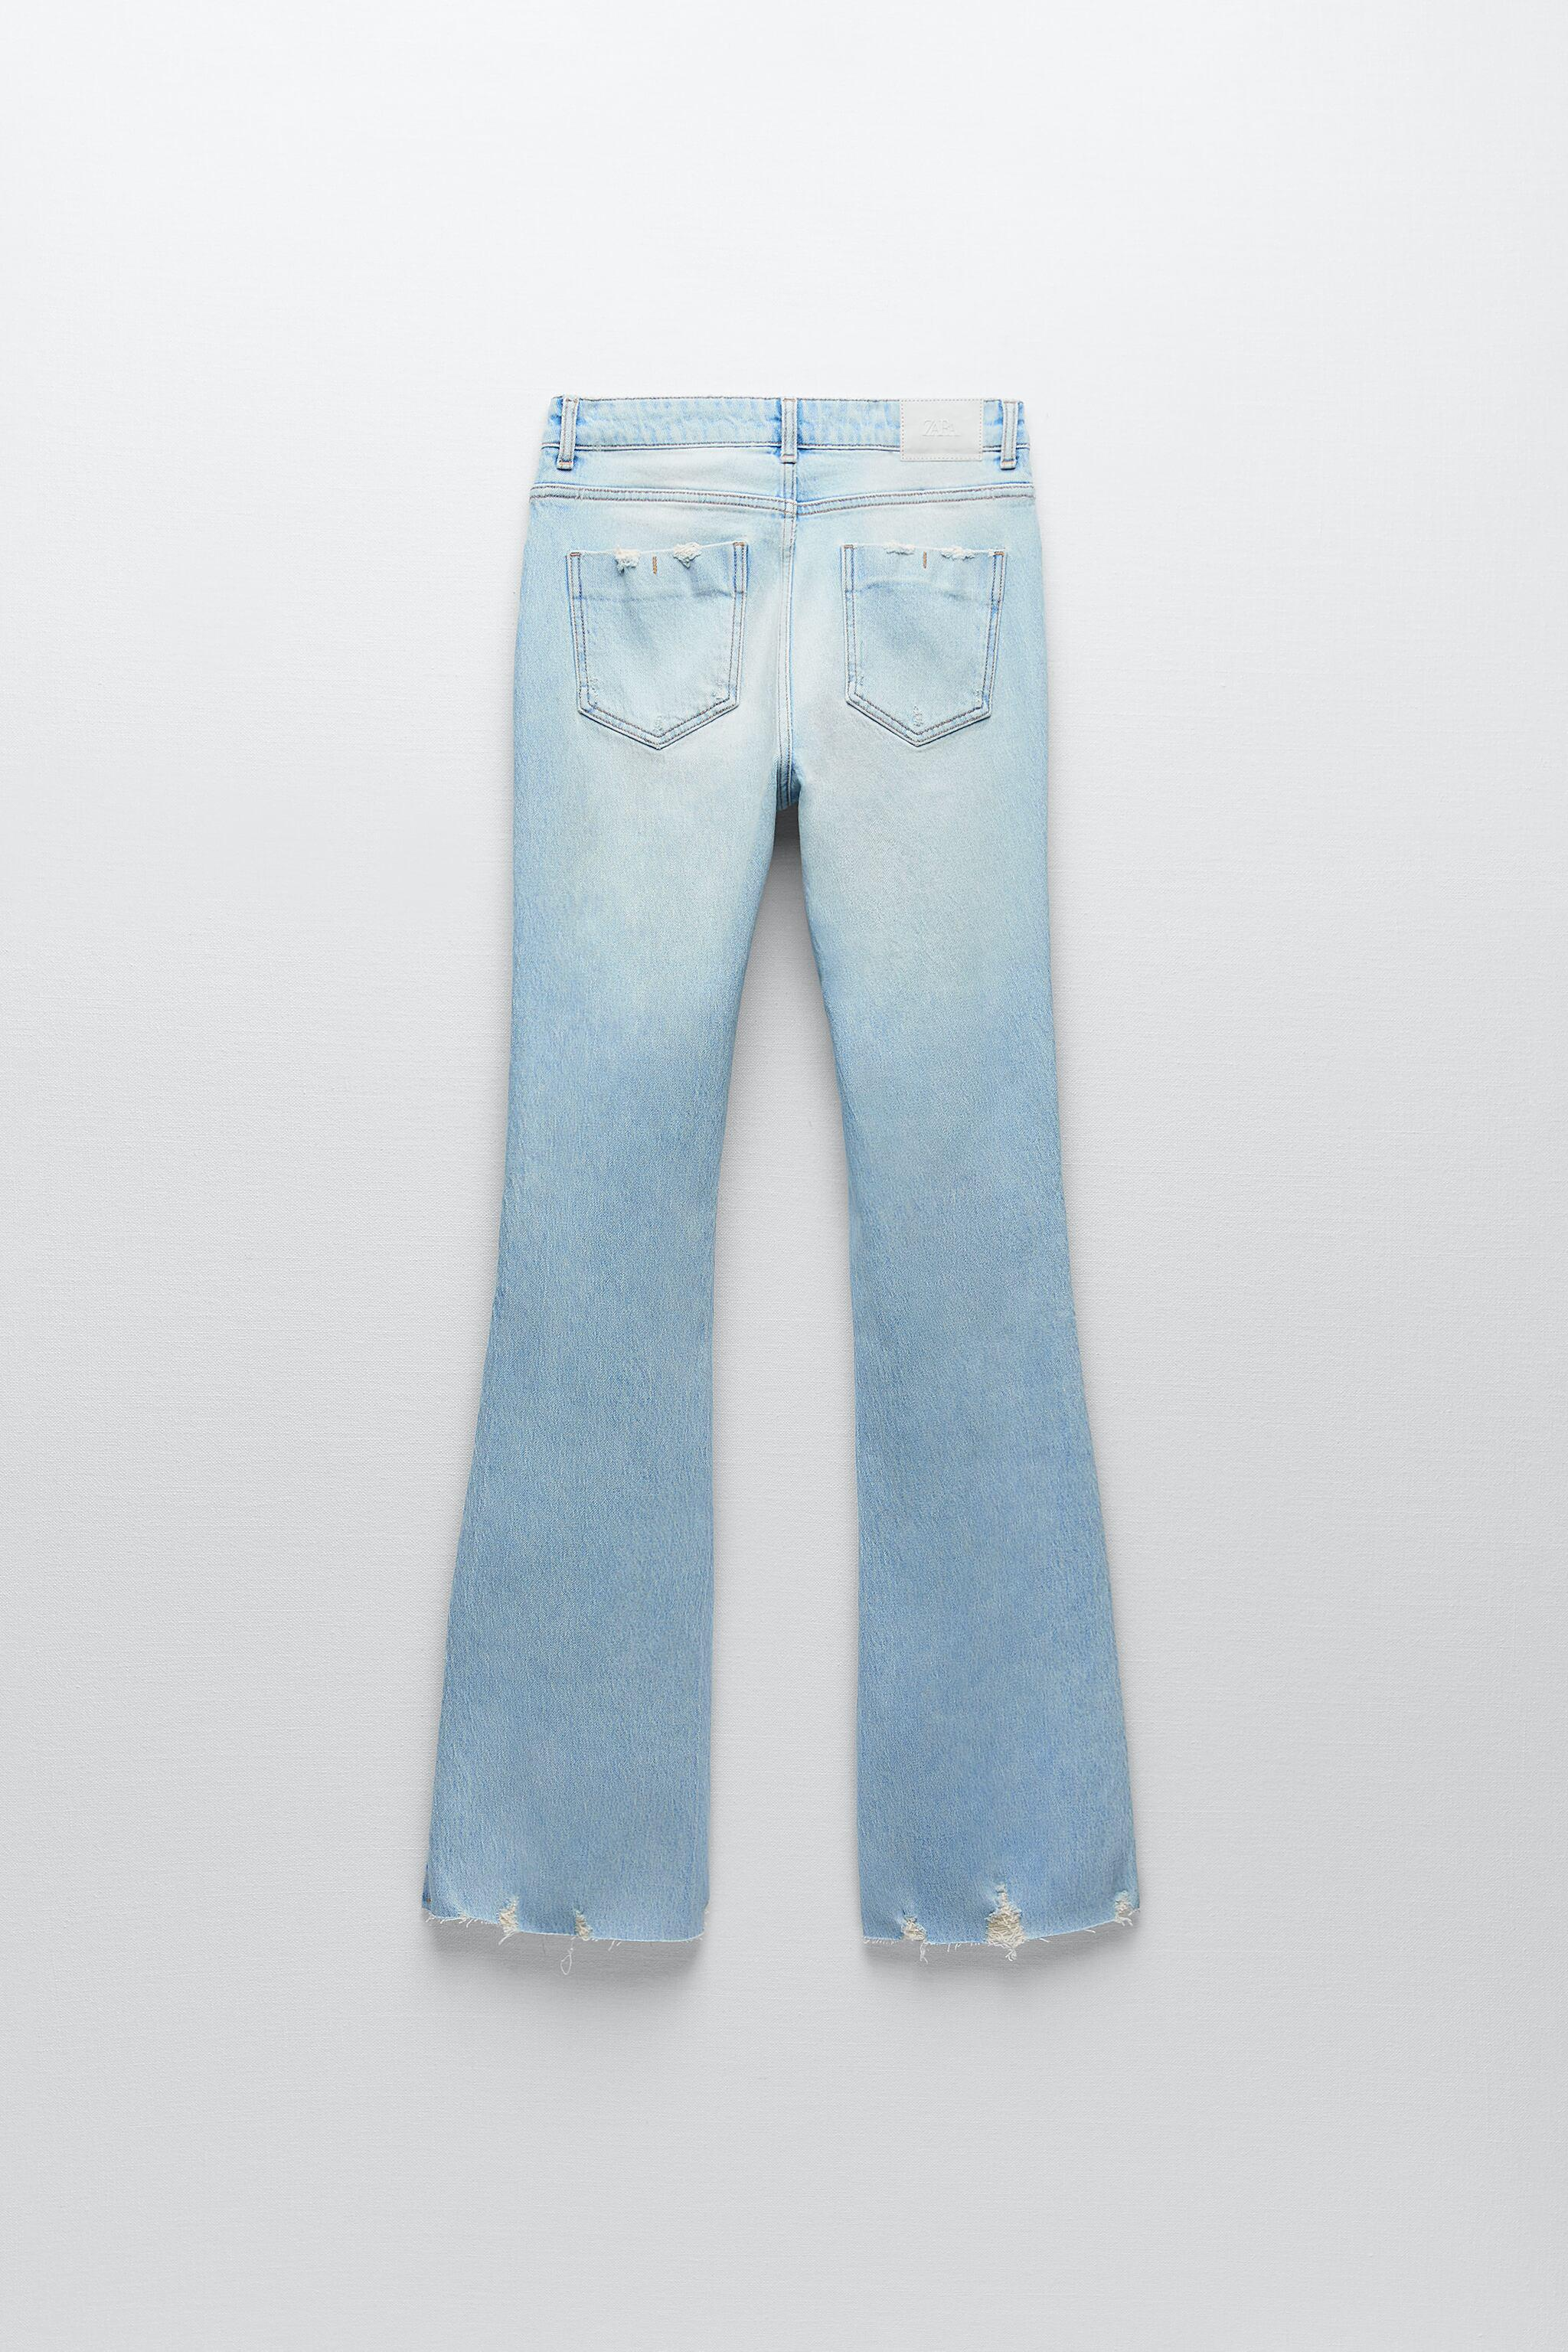 Z1975 RIPPED FLARE JEANS 7